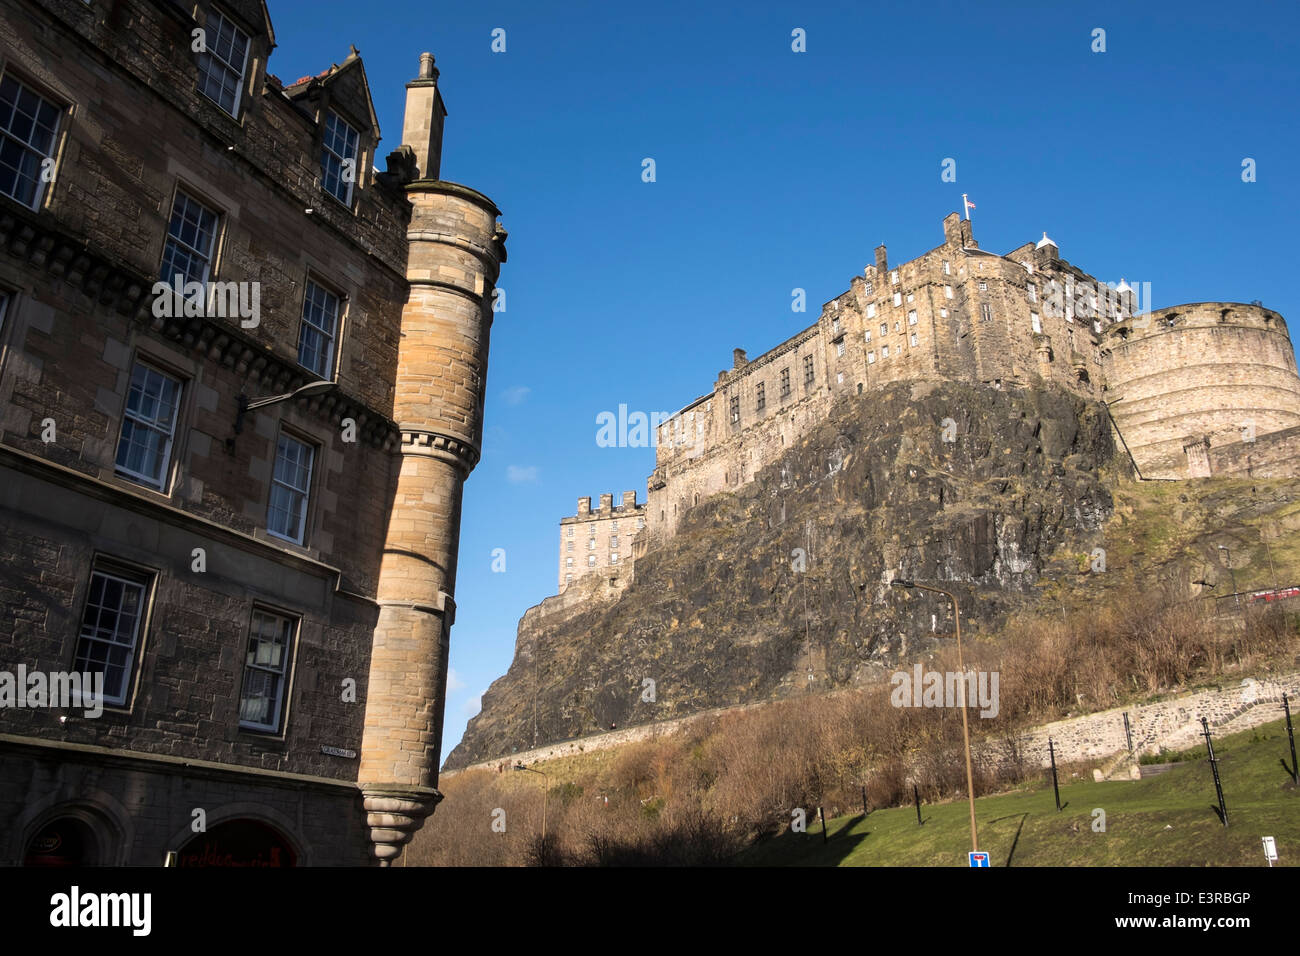 The view of the Edinburgh's castle from the Grassmarket square - Stock Image